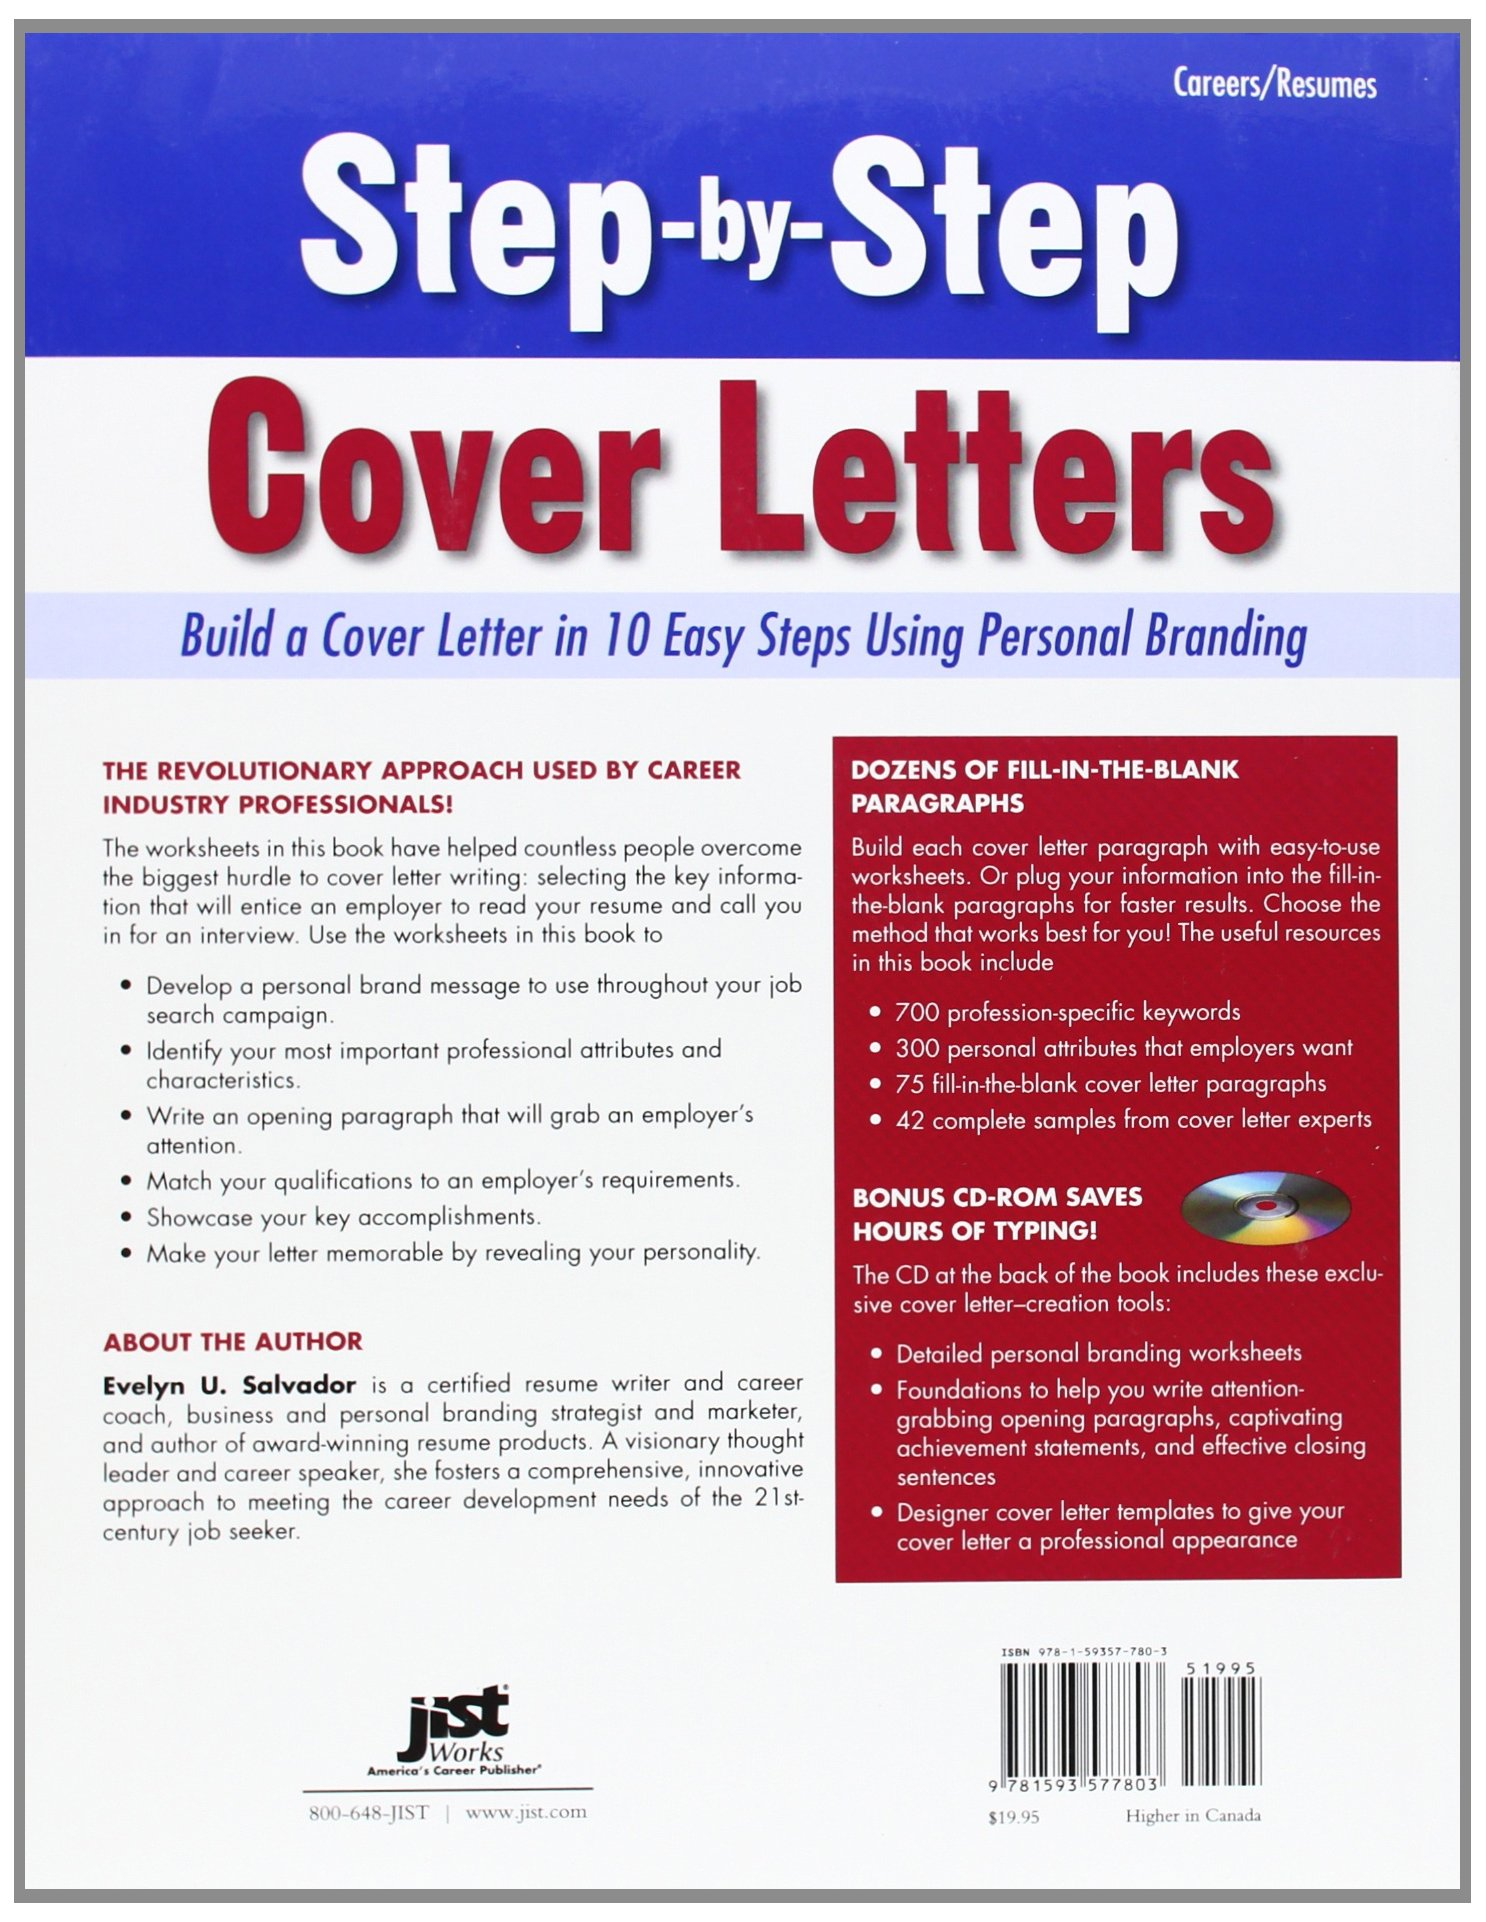 step by step cover letters build a cover letter in easy steps step by step cover letters build a cover letter in 10 easy steps using personal branding evelyn u salvador 9781593577803 com books